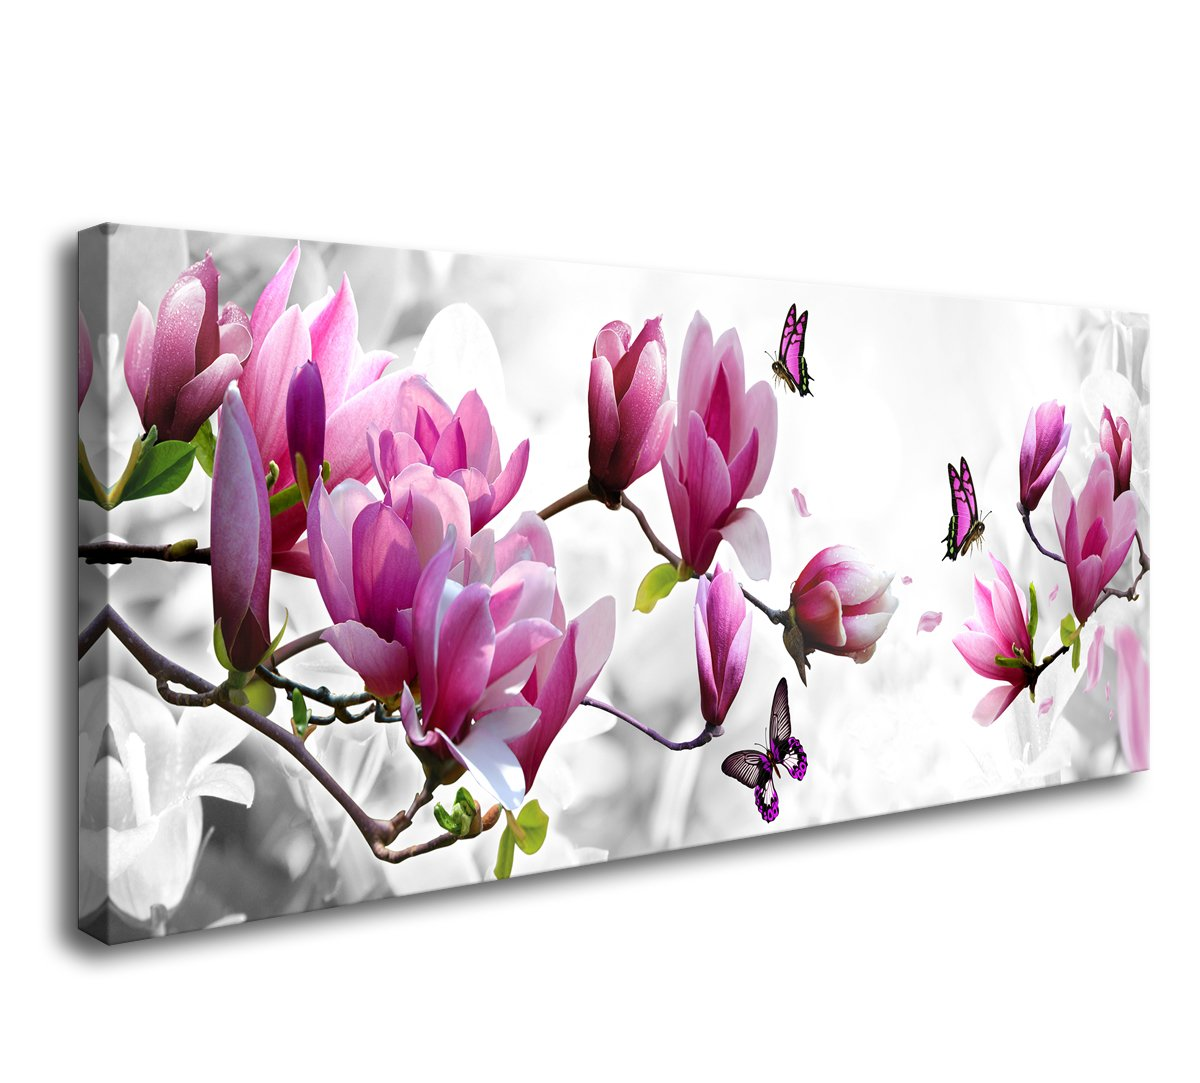 AH40550 Wall Art Framed Canvas Prints Pink Flower and Butterfly Stretched and Framed Canvas Paintings Ready to Hang for Home Decorations Wall Decor by Cao Gen Decor Art